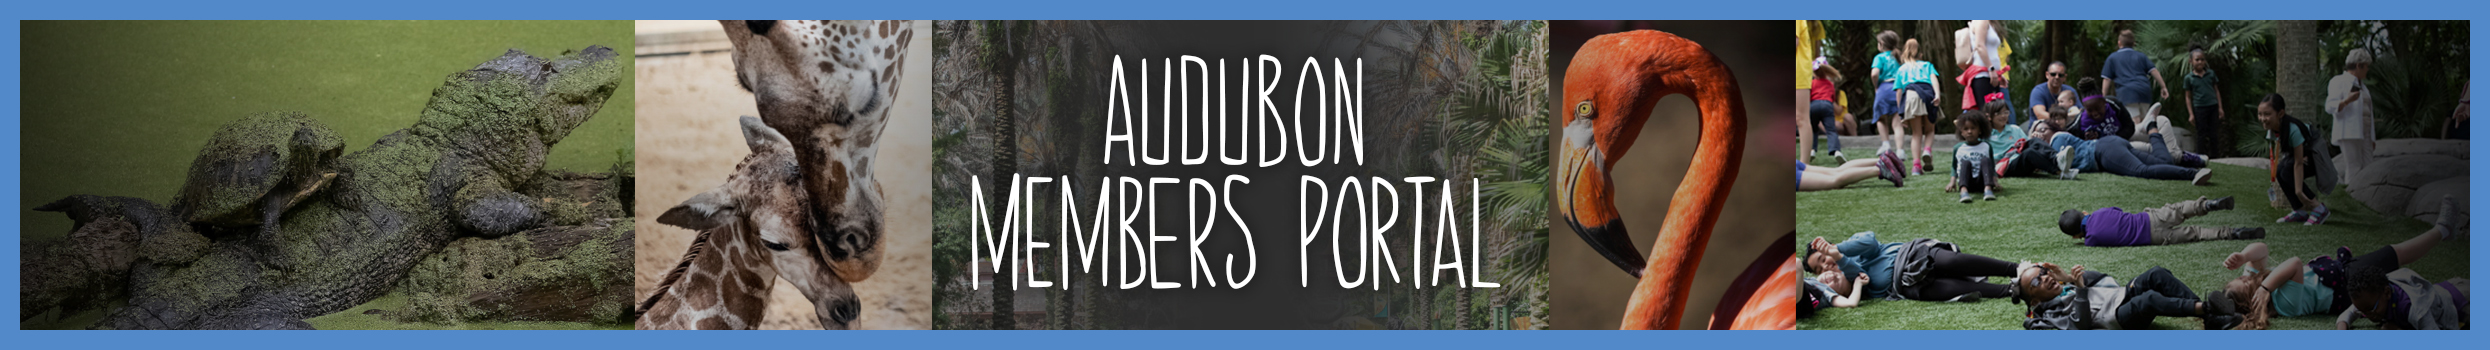 header_-_Audubon_Members_portal_page